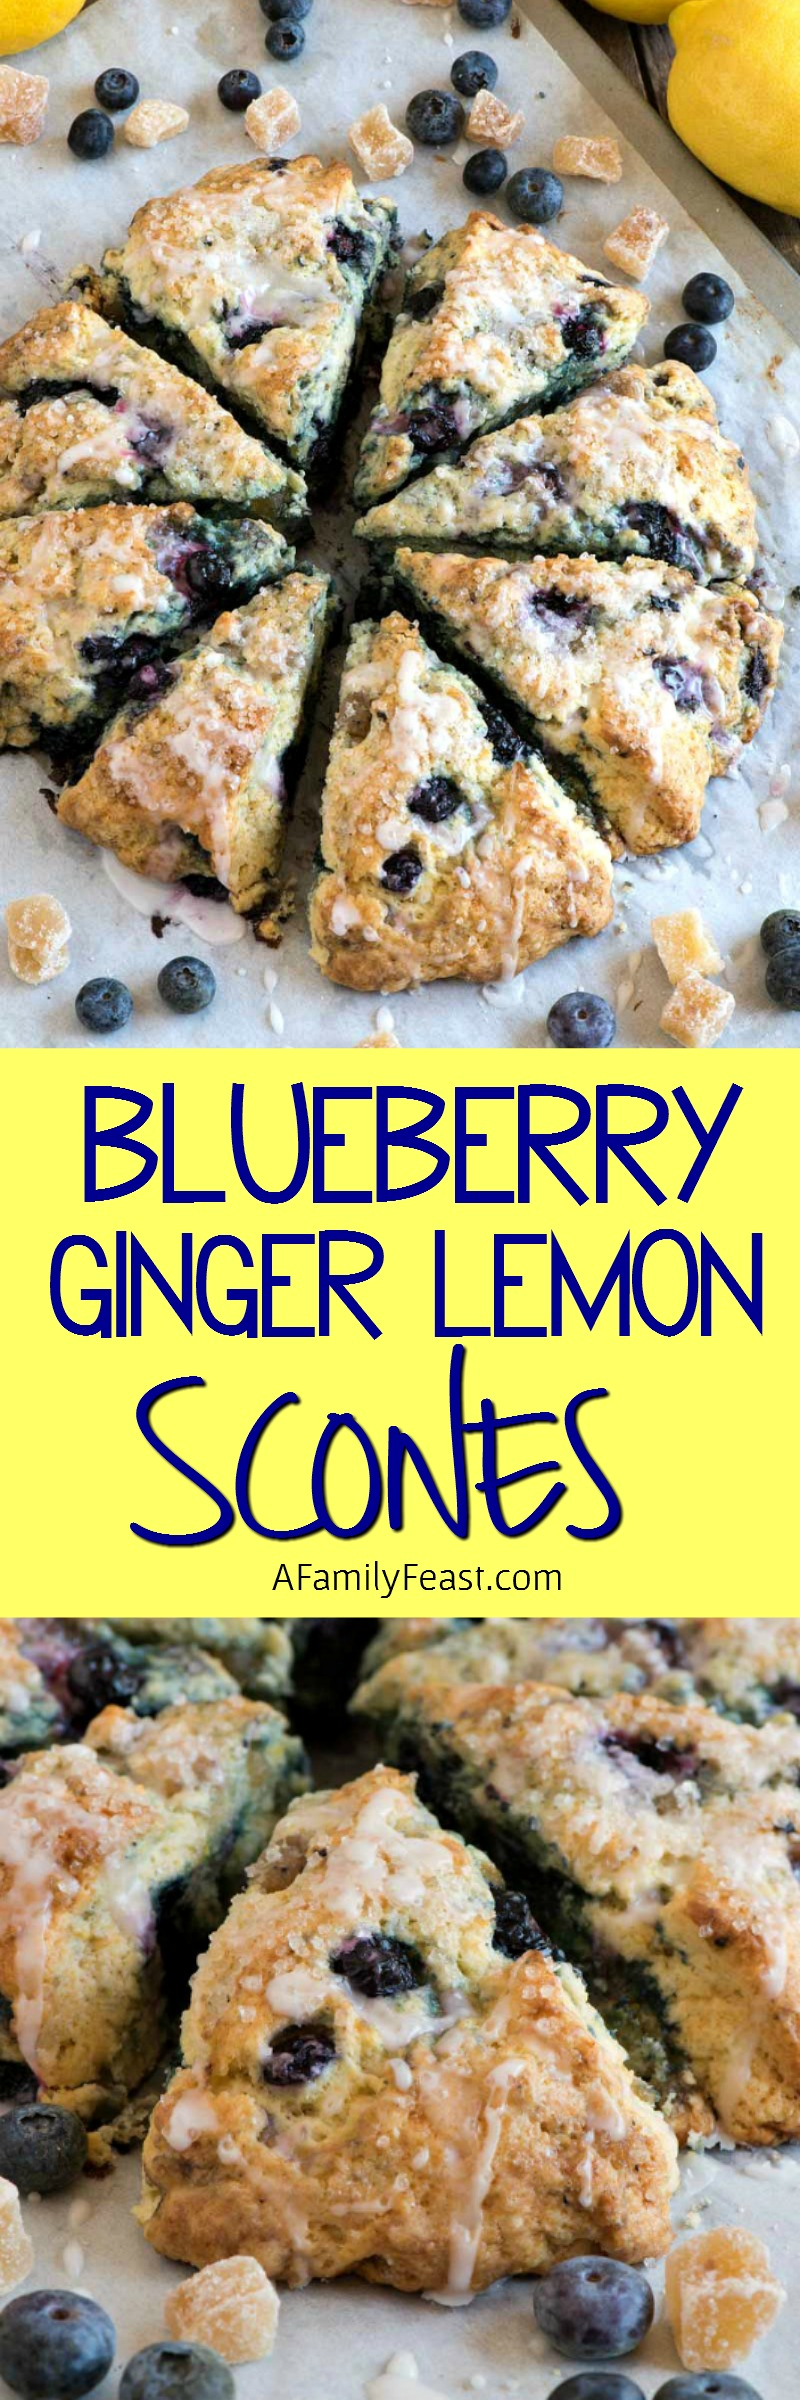 Blueberry Ginger Lemon Scones - Sweet buttery scones bursting with flavor!